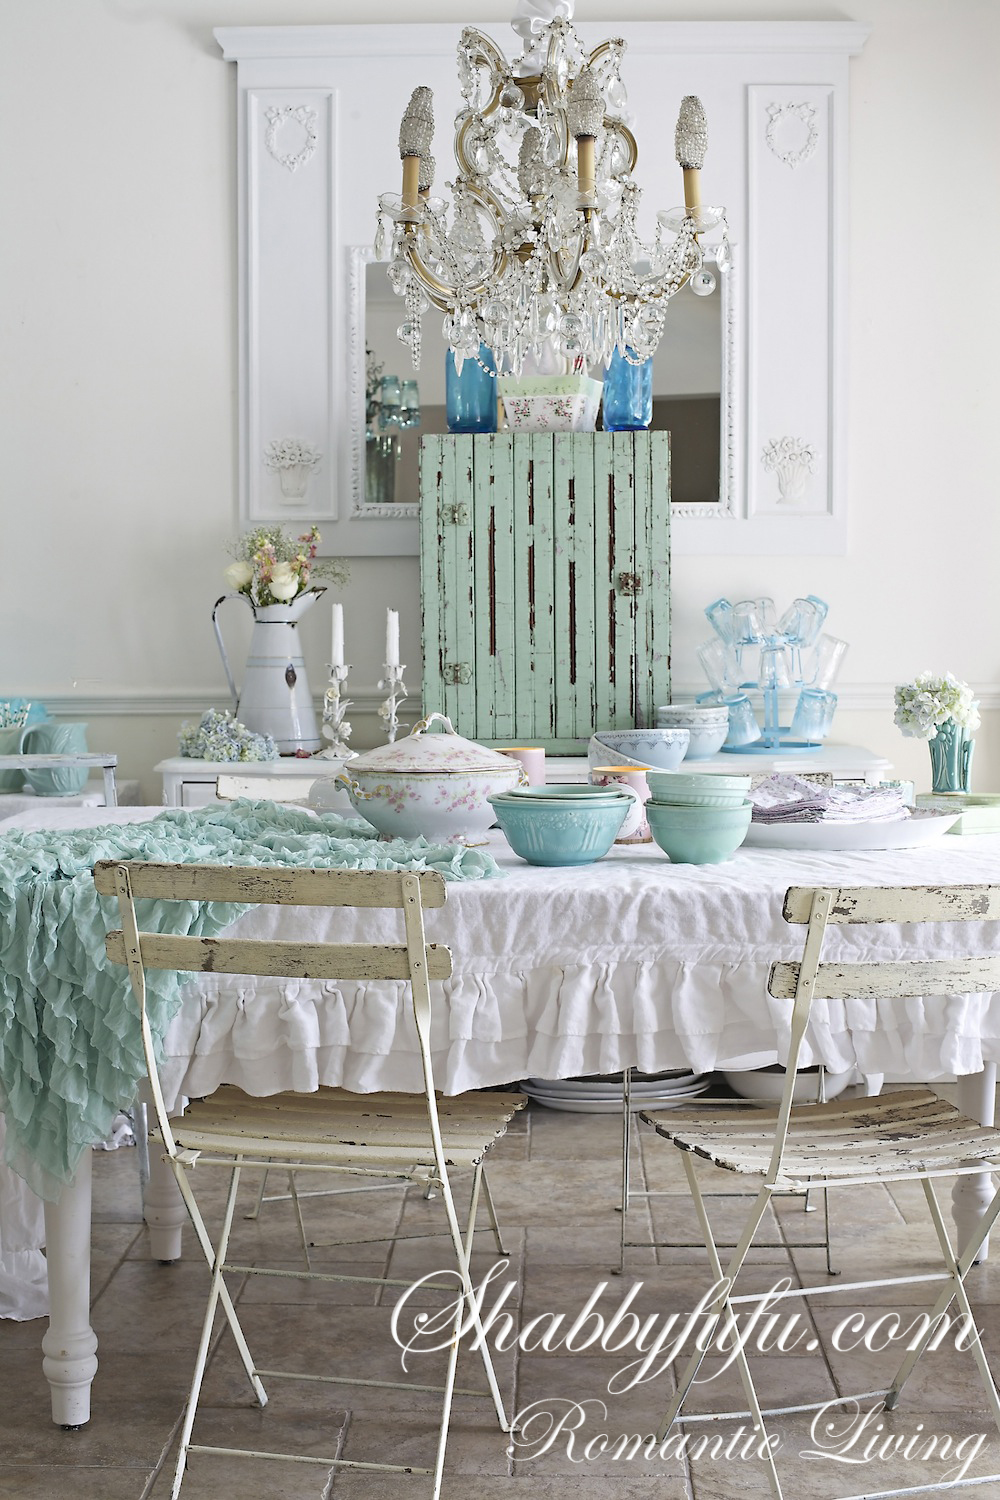 Shabby fluff fru fru and lace on pinterest shabby chic shabby and ana rosa - Shabby chic dining rooms ...